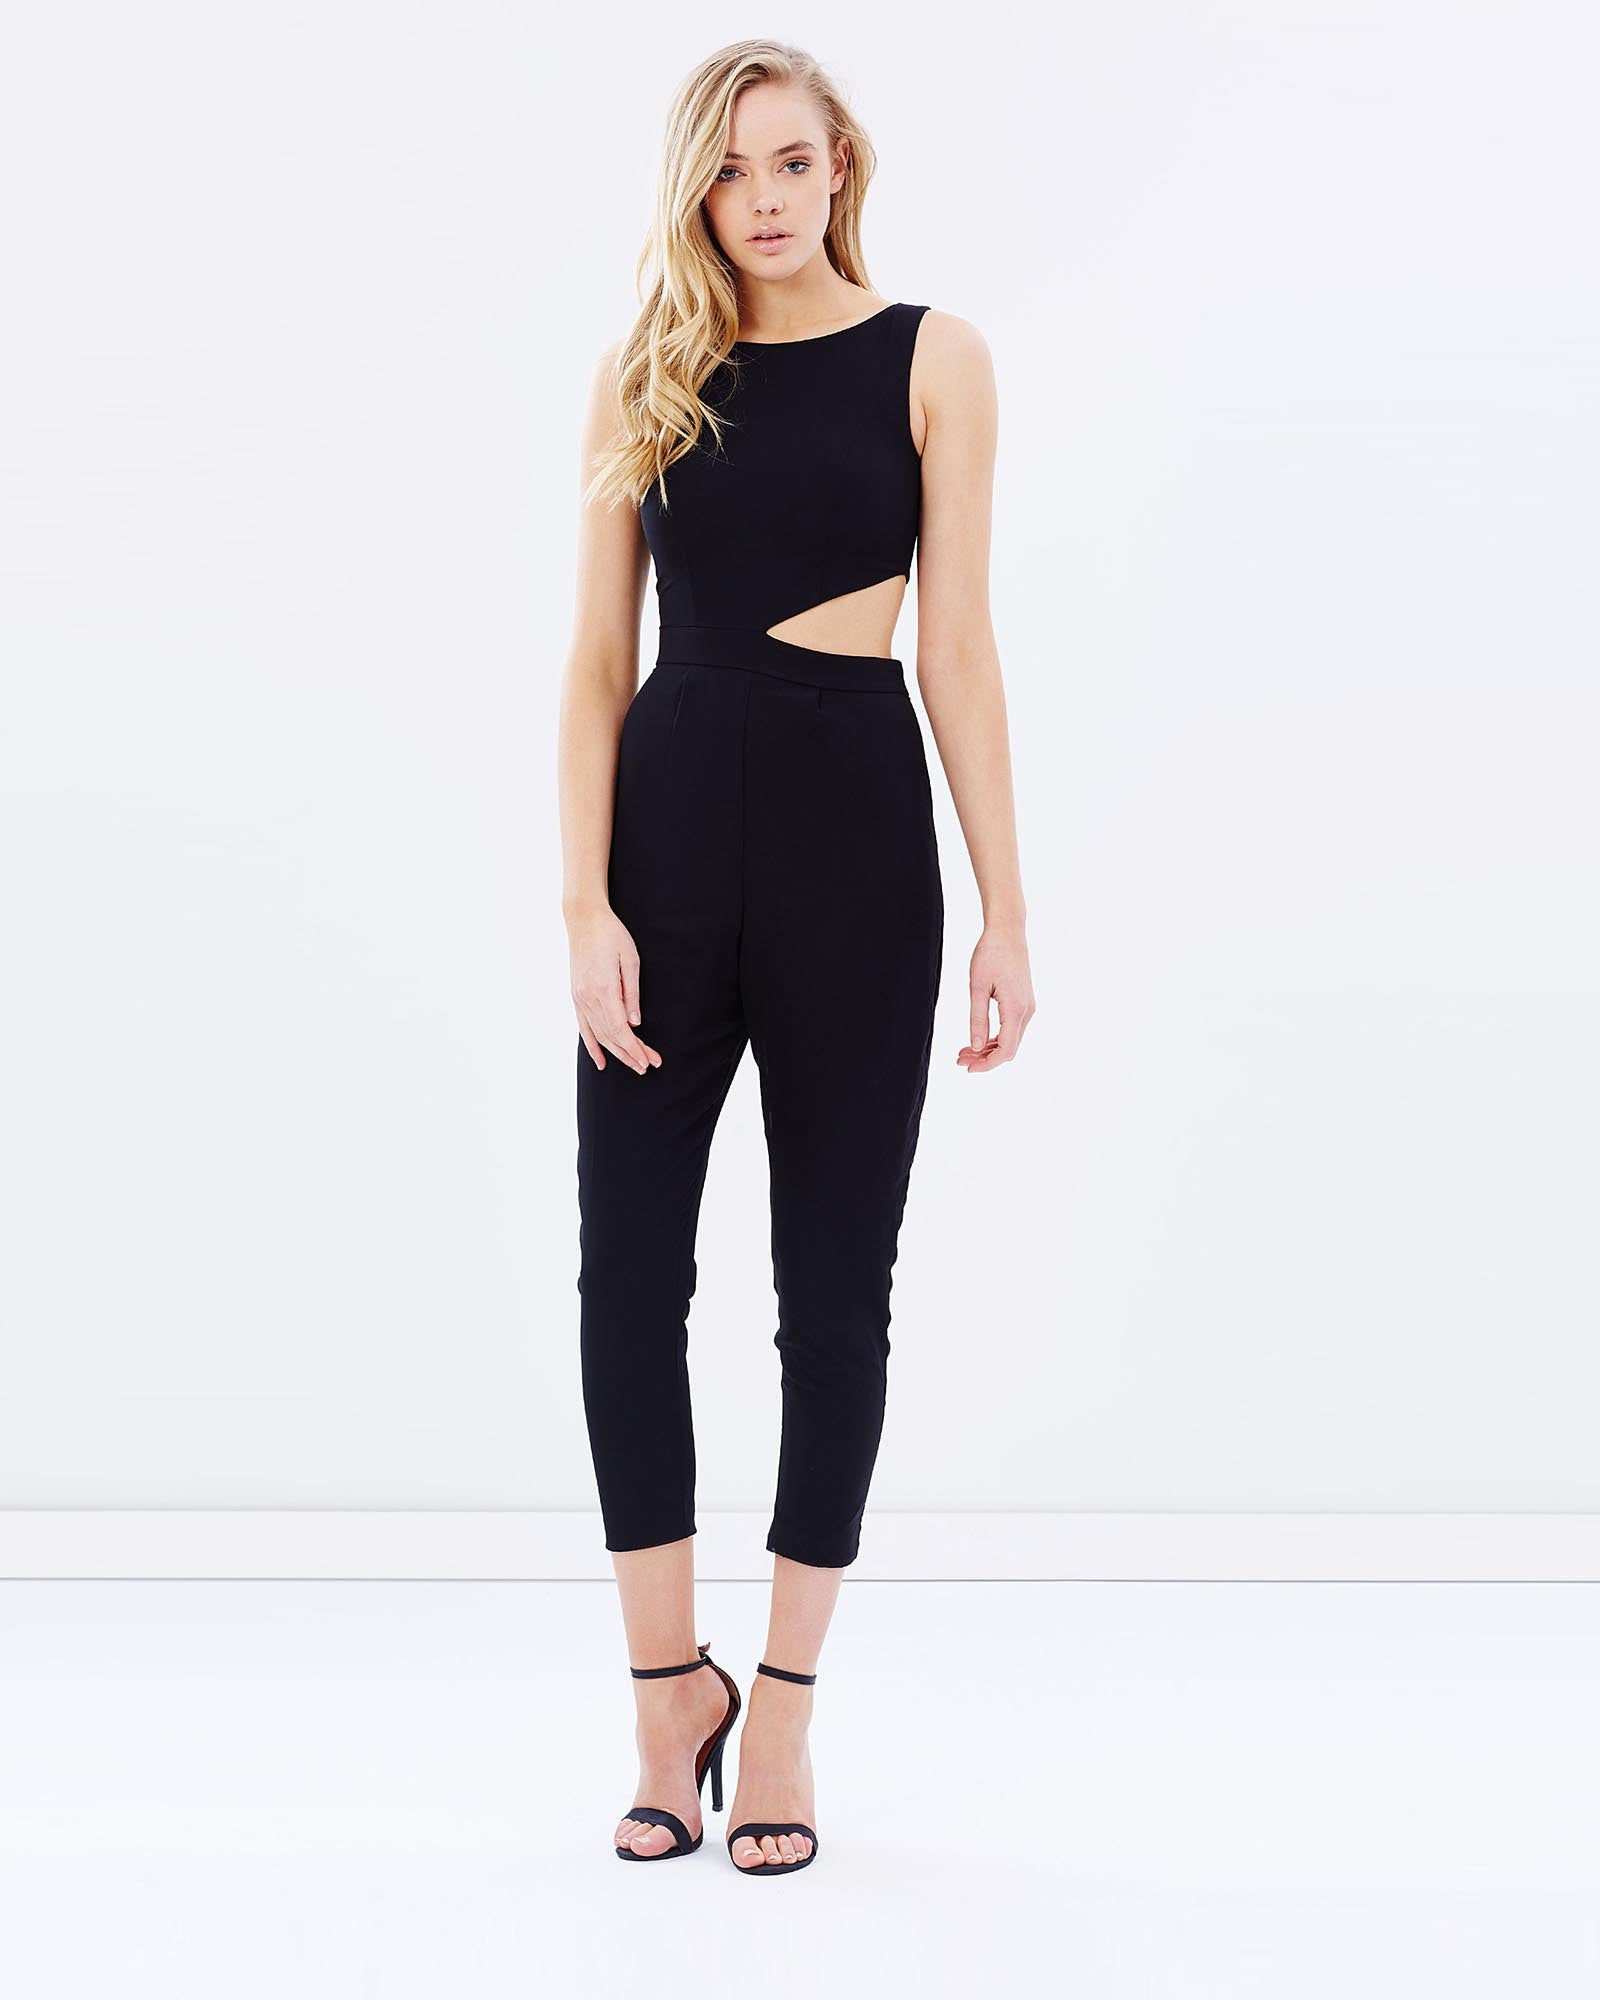 Jumpsuit with Side Cut Outs - Black